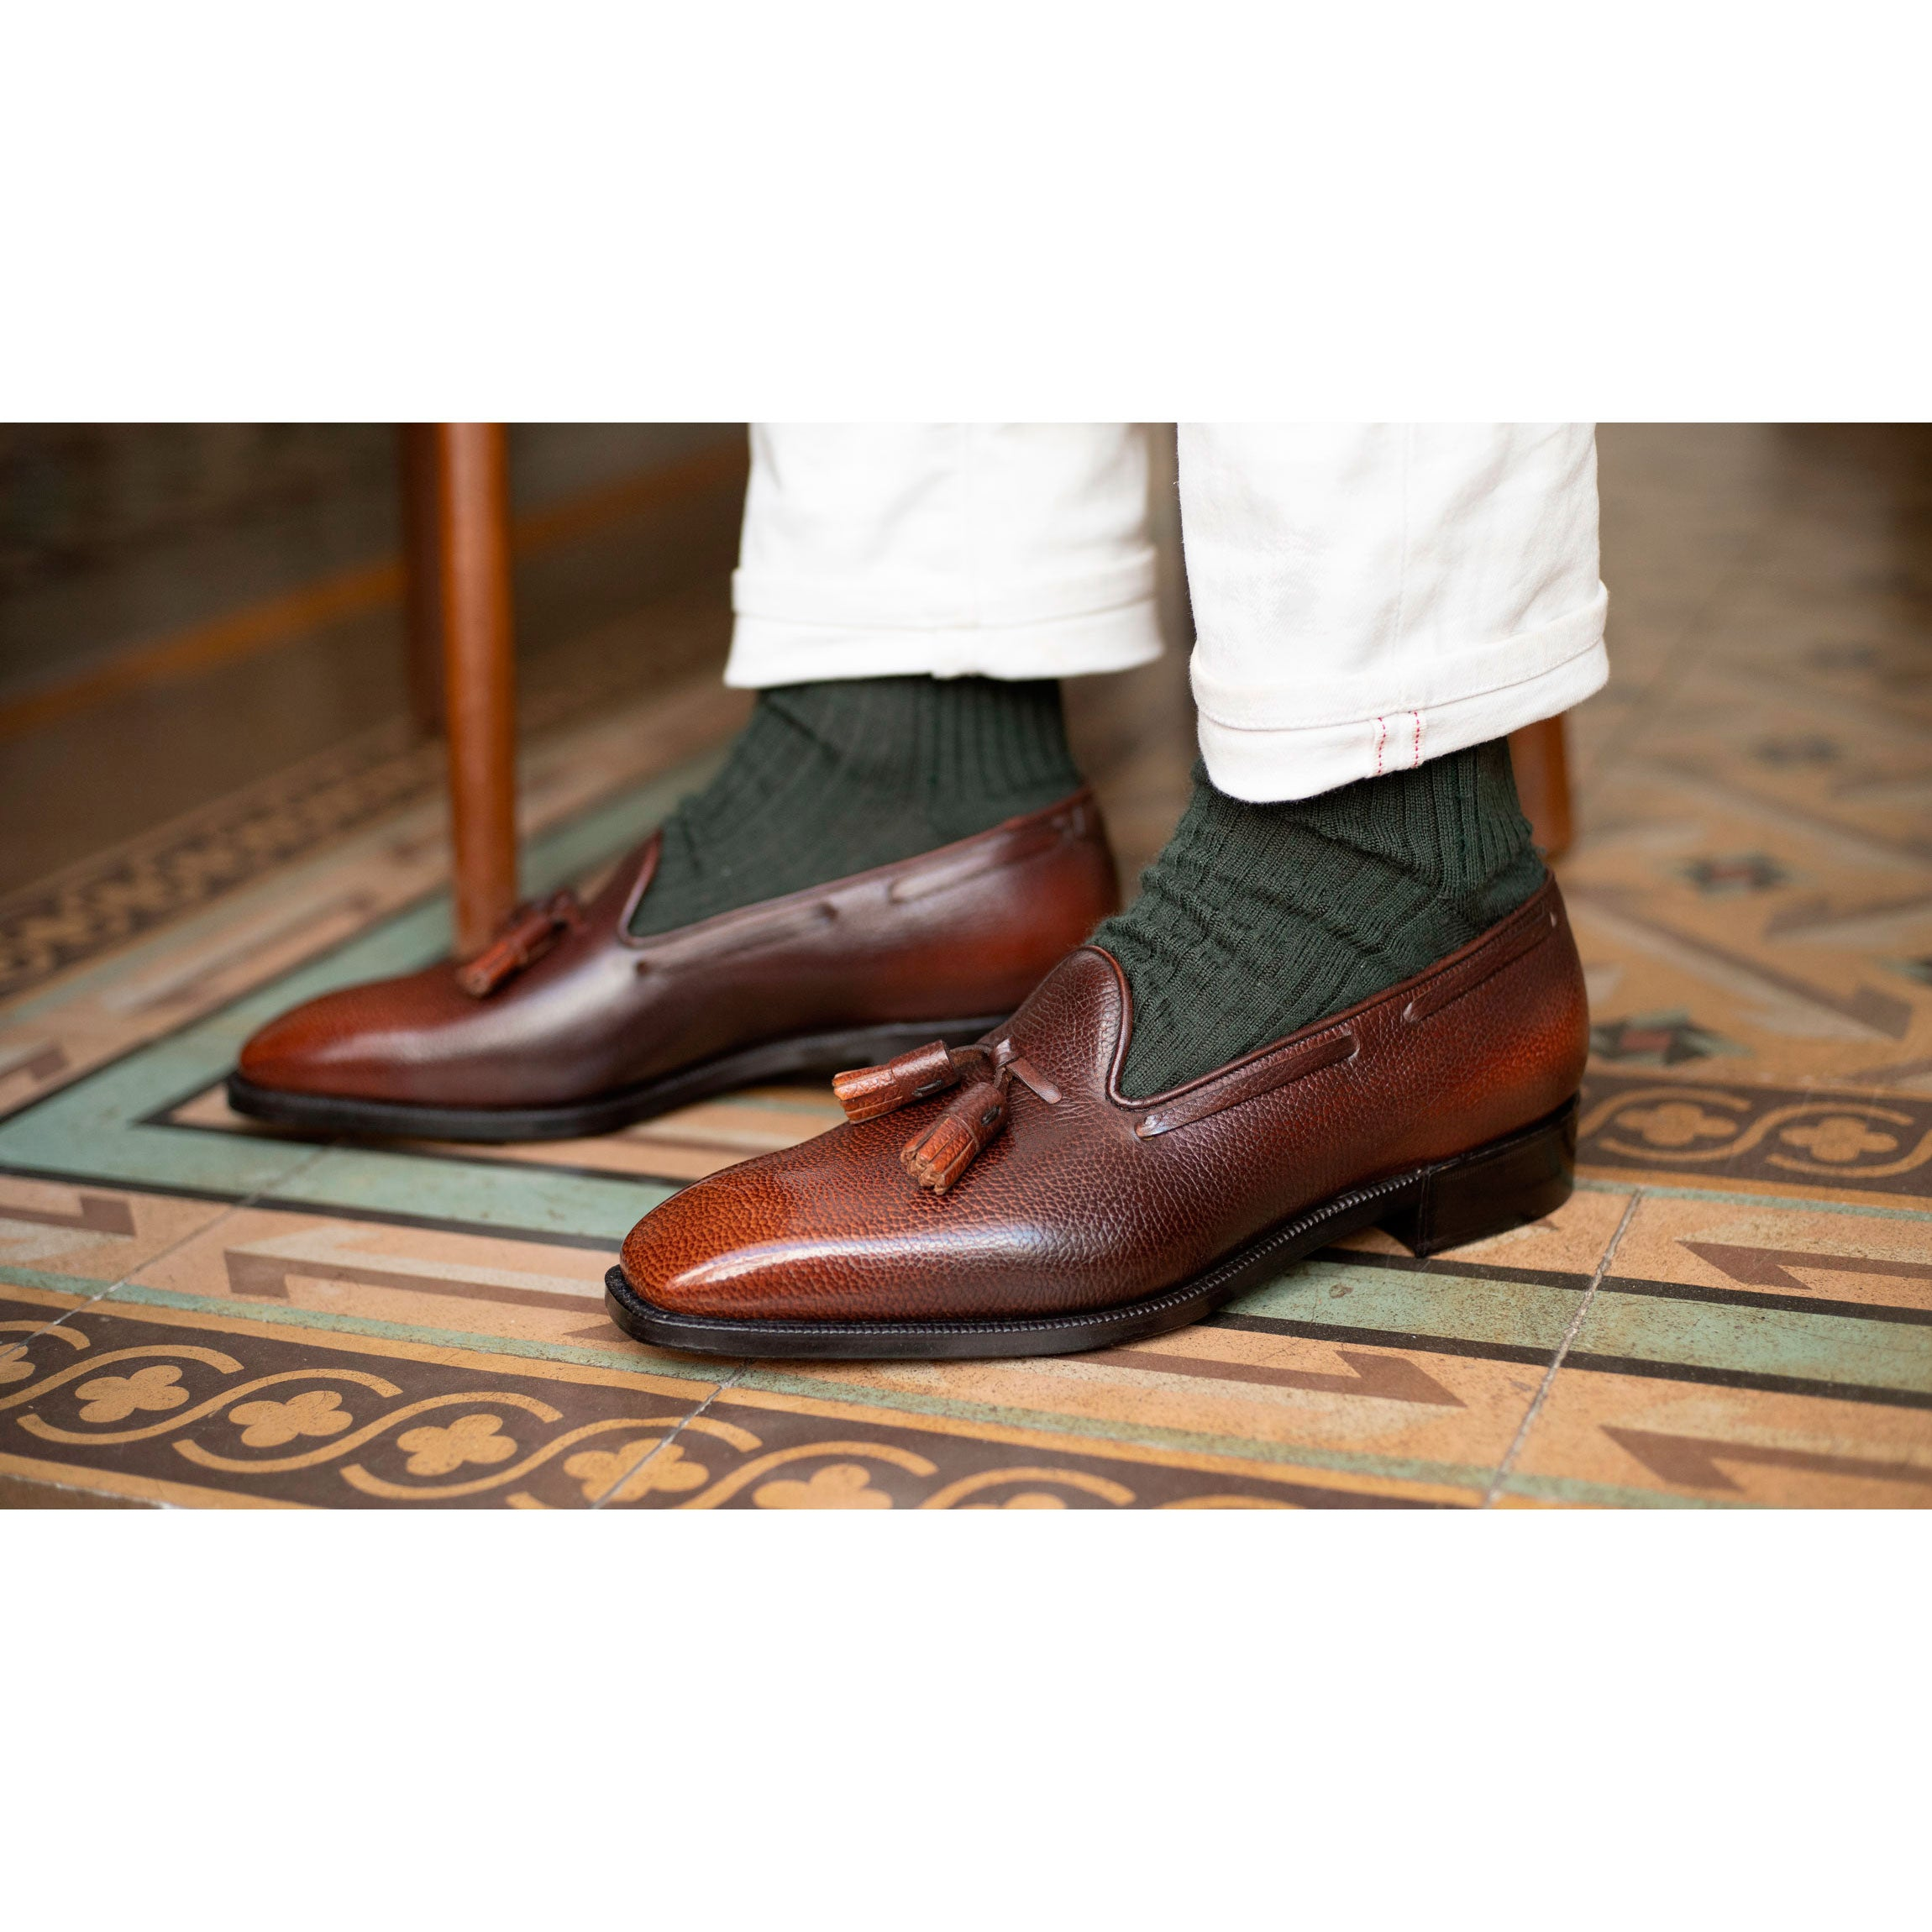 Chiseled Toe Tassel Loafer (Made-to-Order) - 3D Brown Patina